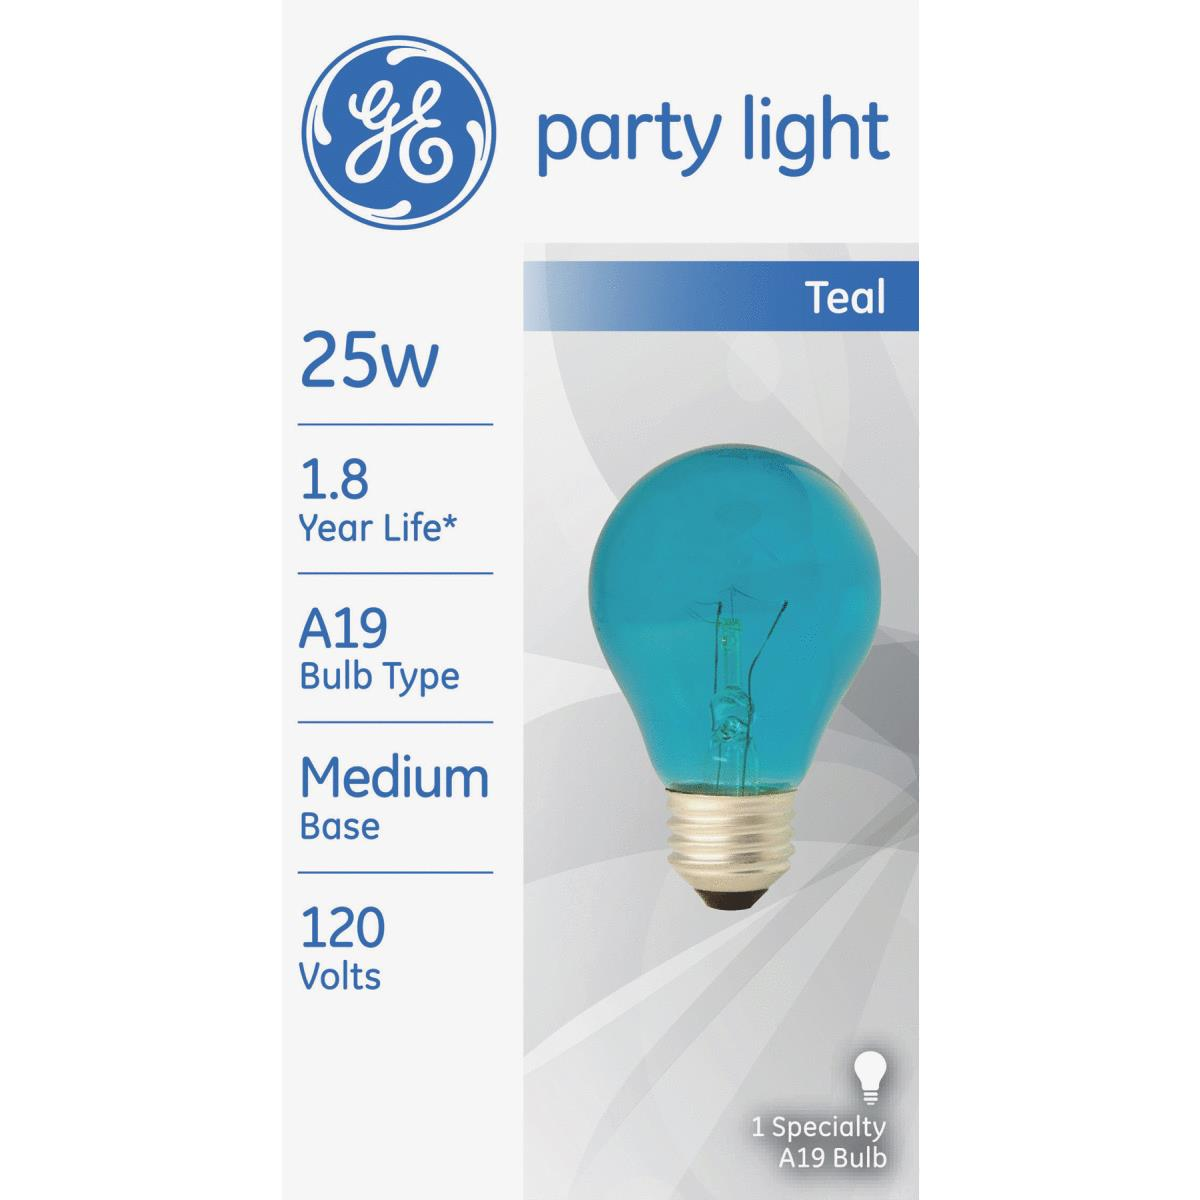 GE A19 Decorative Party Light Bulb